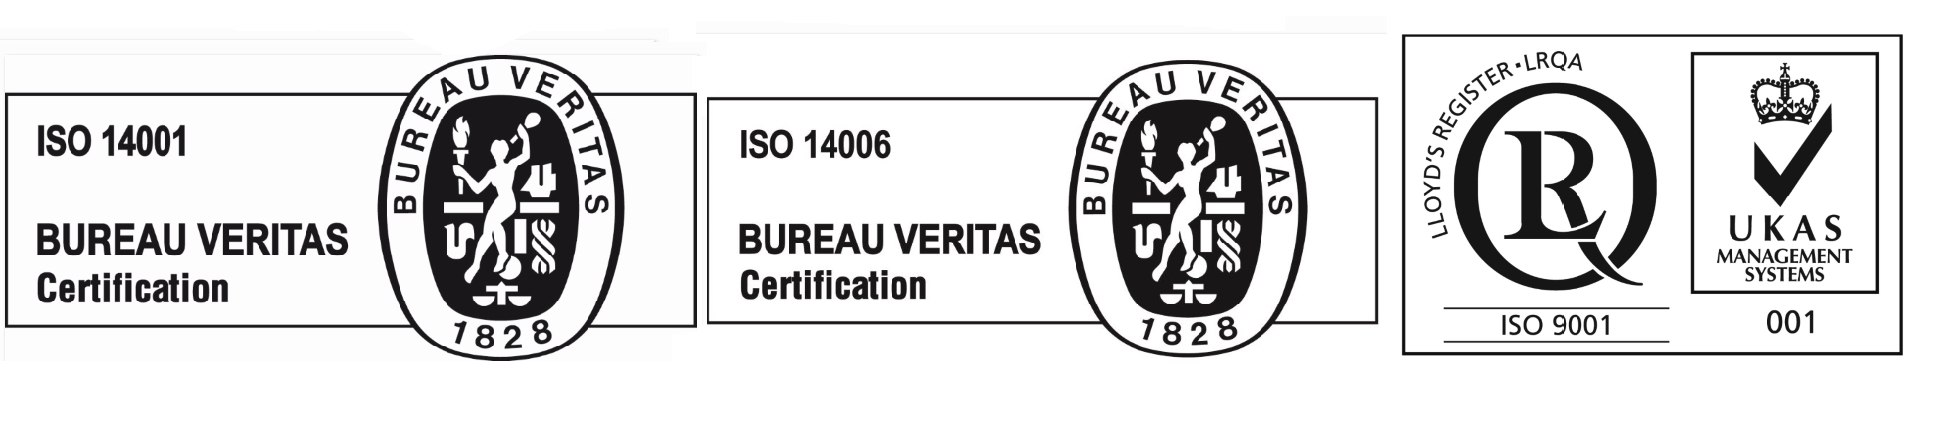 iso bureau veritas logo images. Black Bedroom Furniture Sets. Home Design Ideas